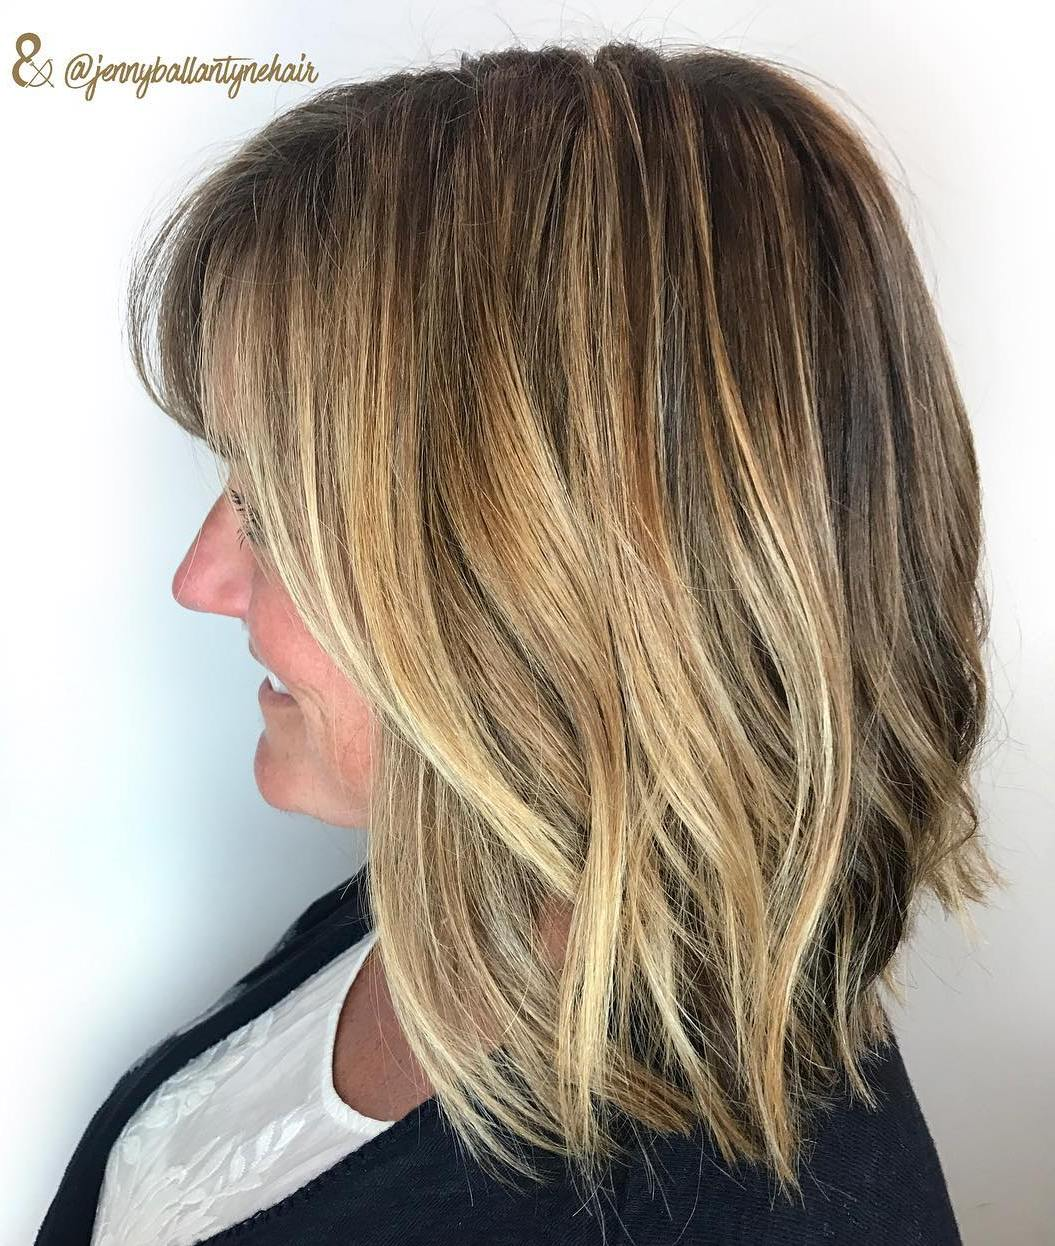 Youthful Long Cut with Waves